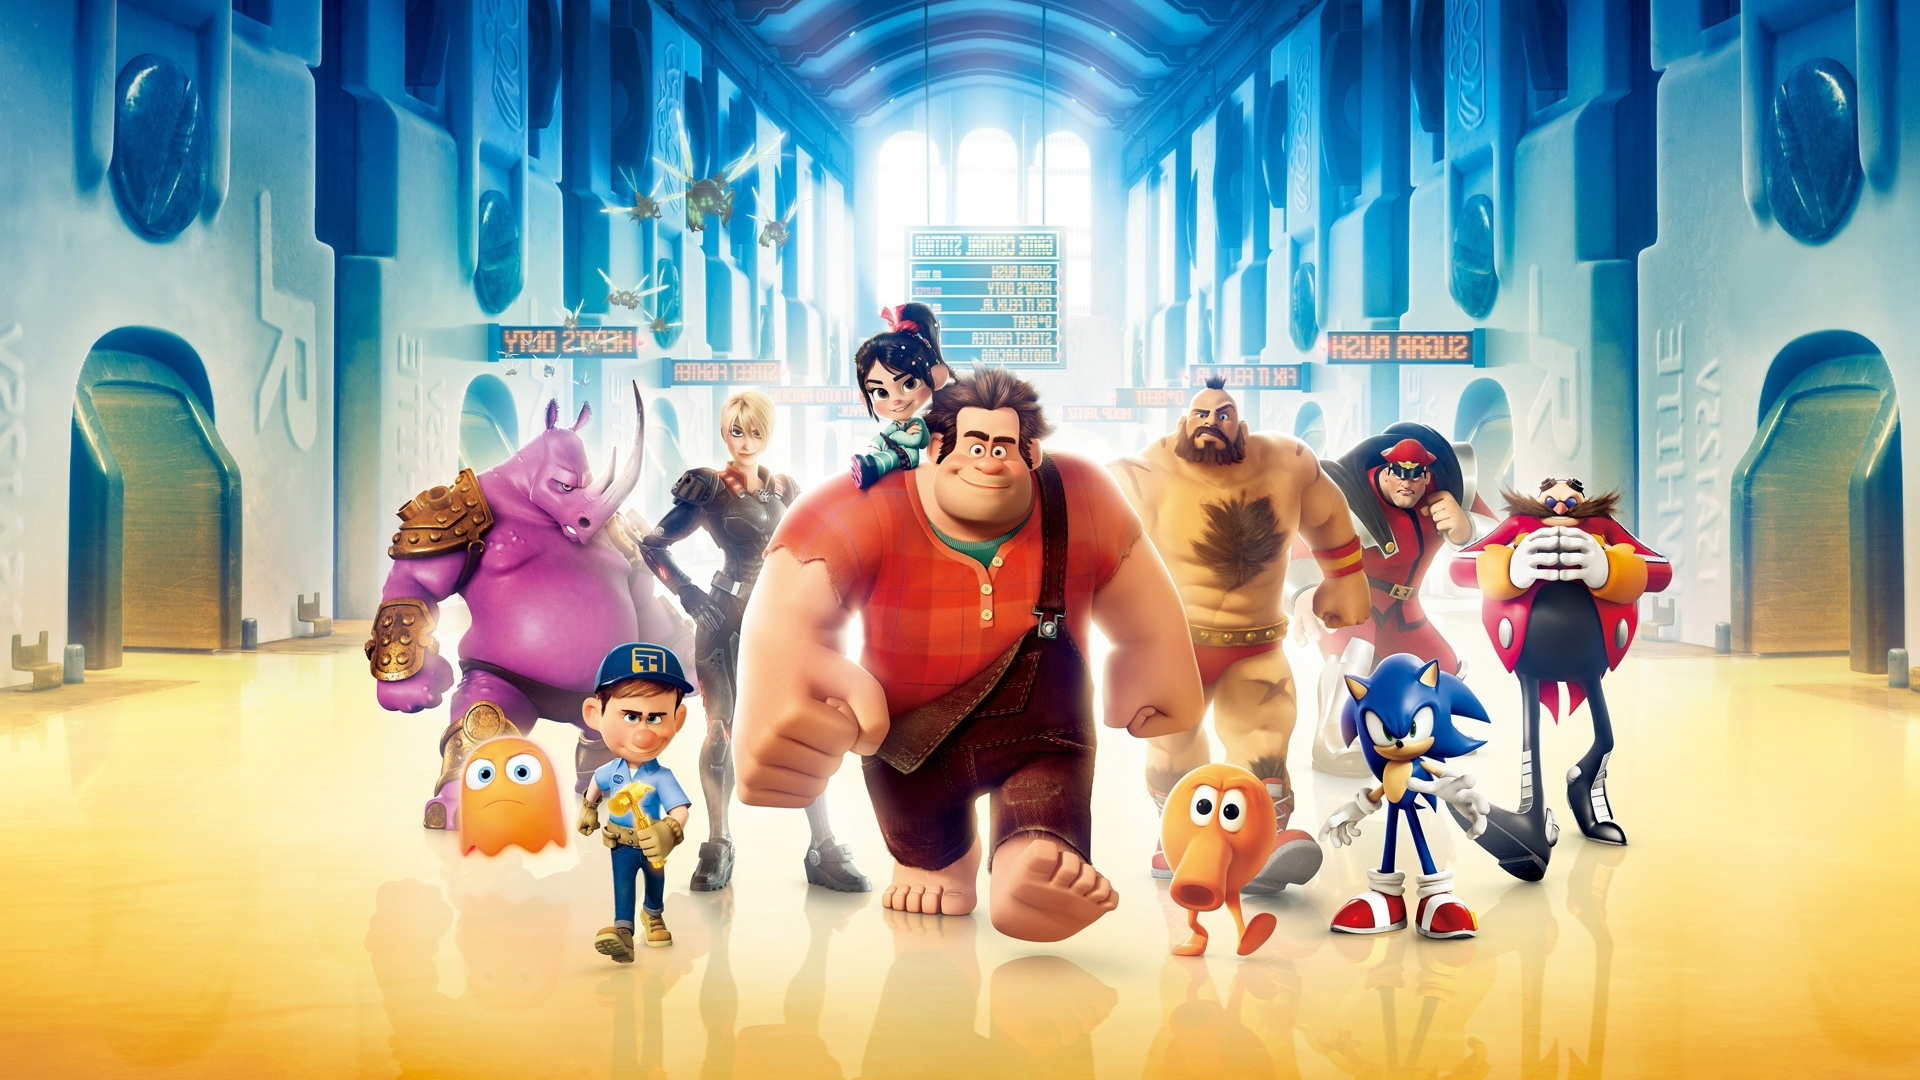 Title Wreck It Ralph Wallpapers Live Images Hd Dimension 1920 X 1080 File Type JPG JPEG